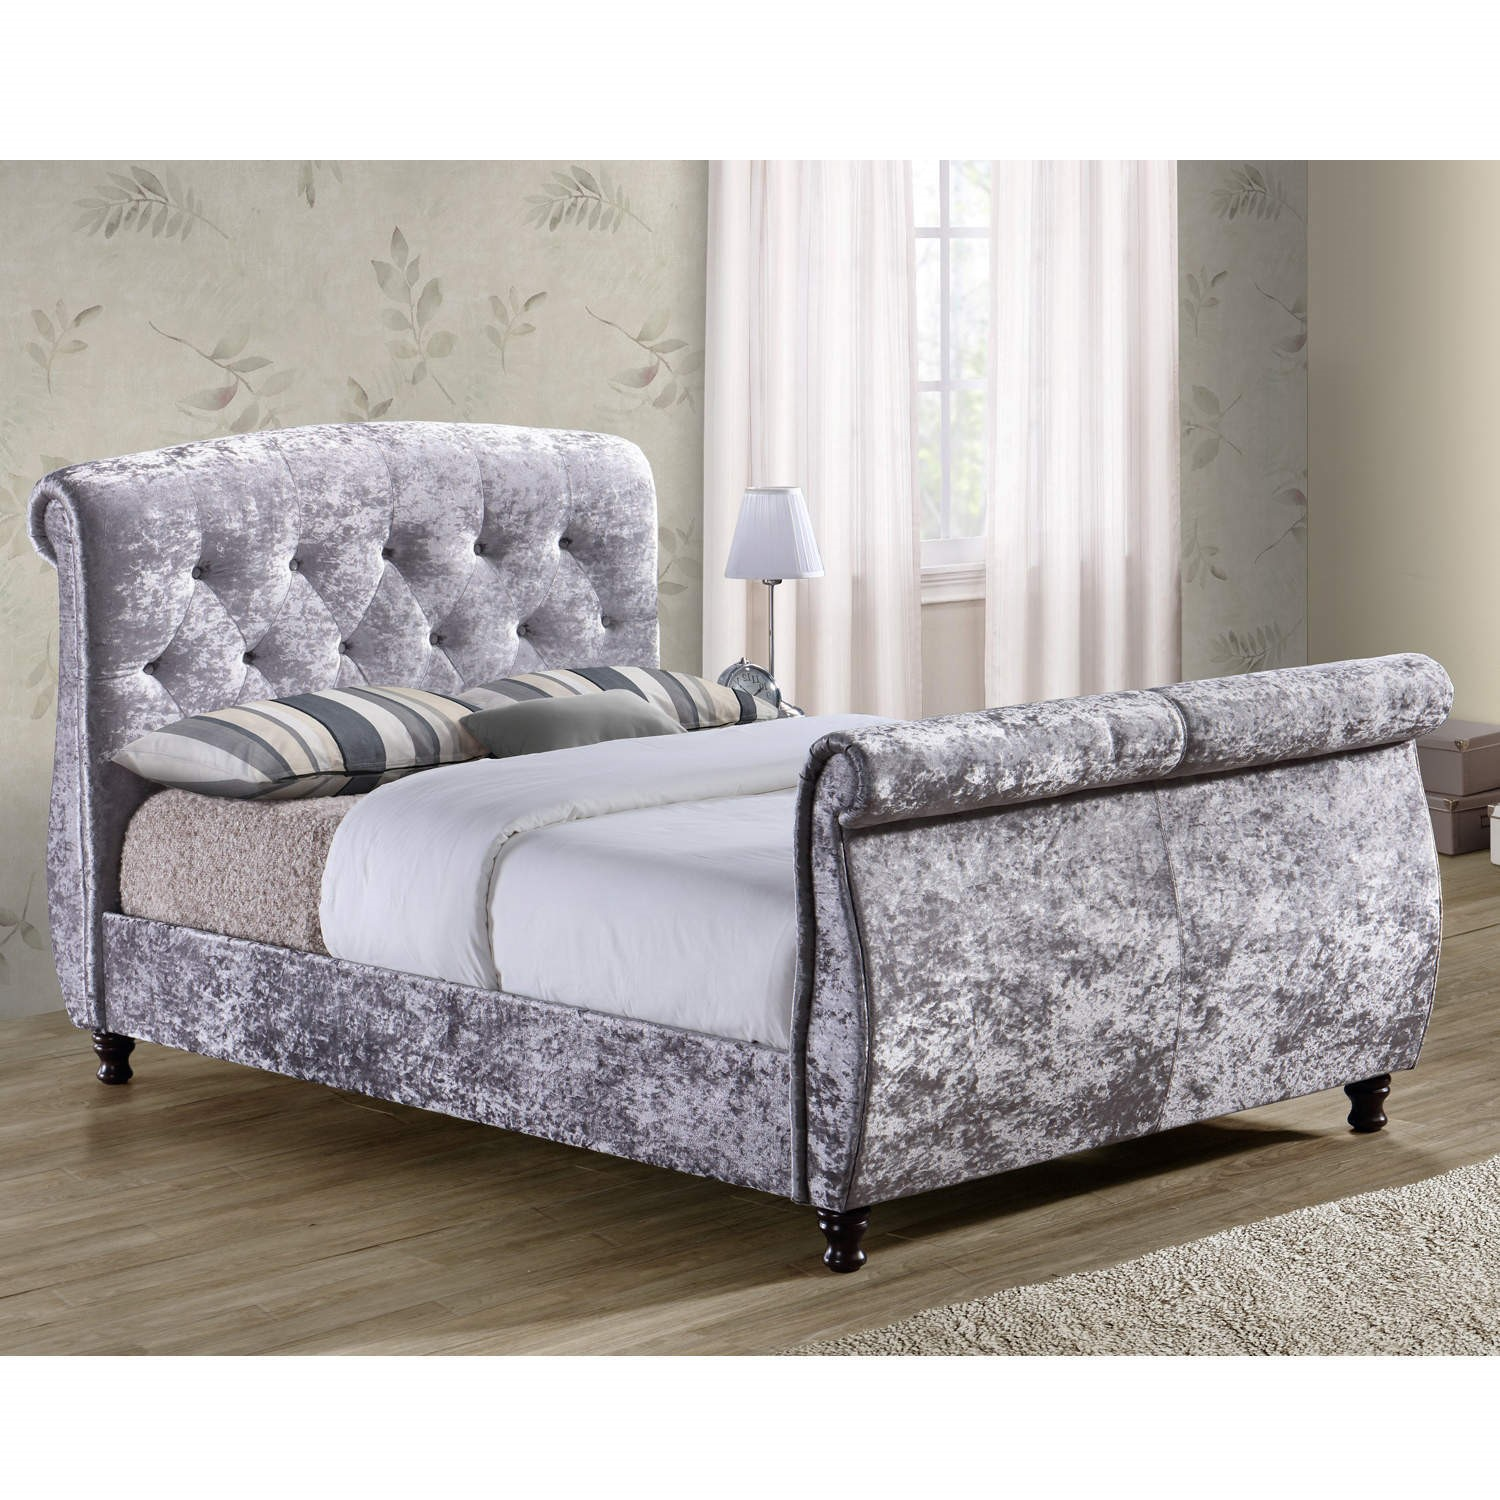 Birlea Toulouse Crushed Velvet Double Bed Grey Furniture123